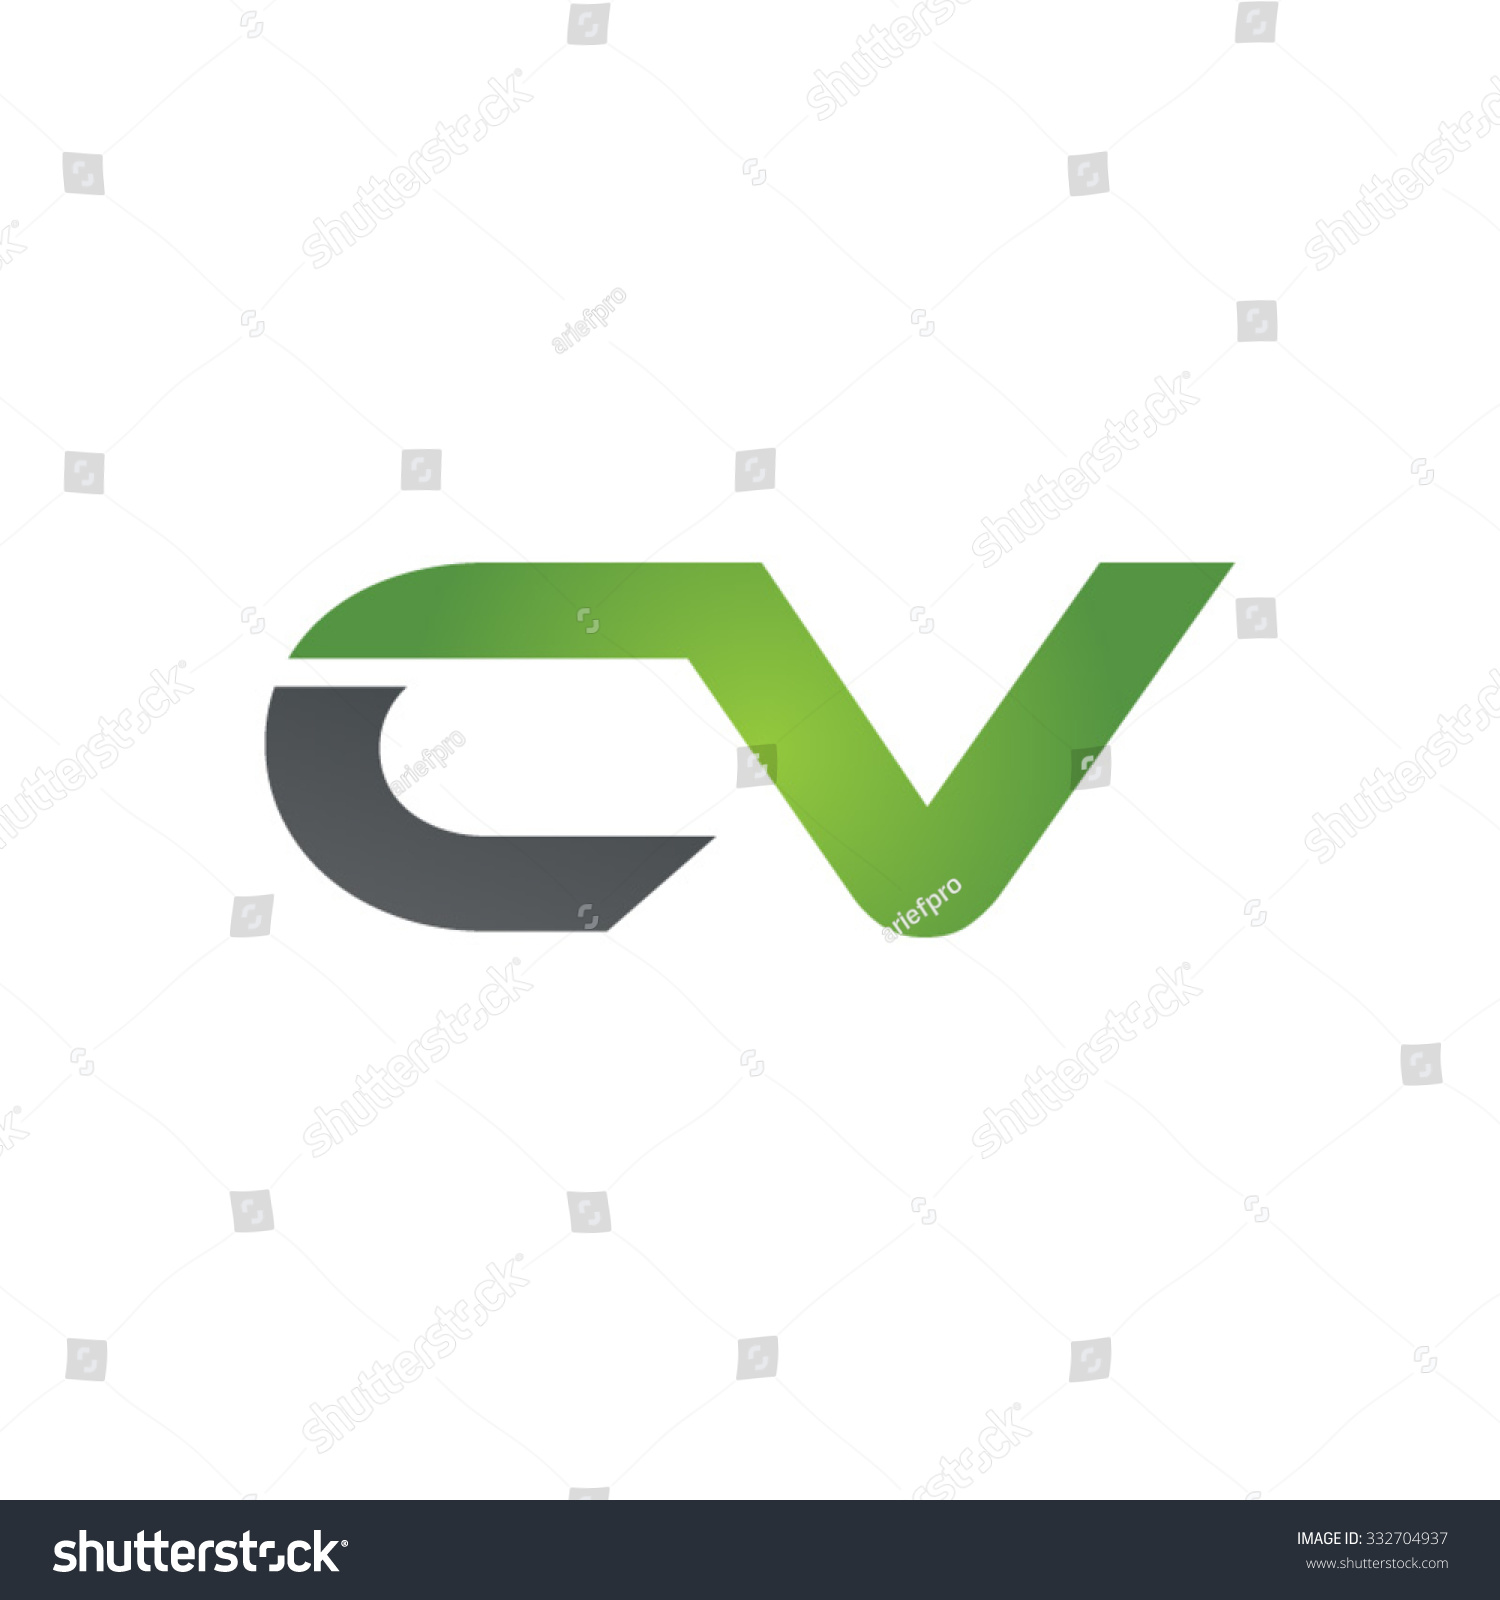 cv company linked letter logo green stock vector illustration 332704937   shutterstock